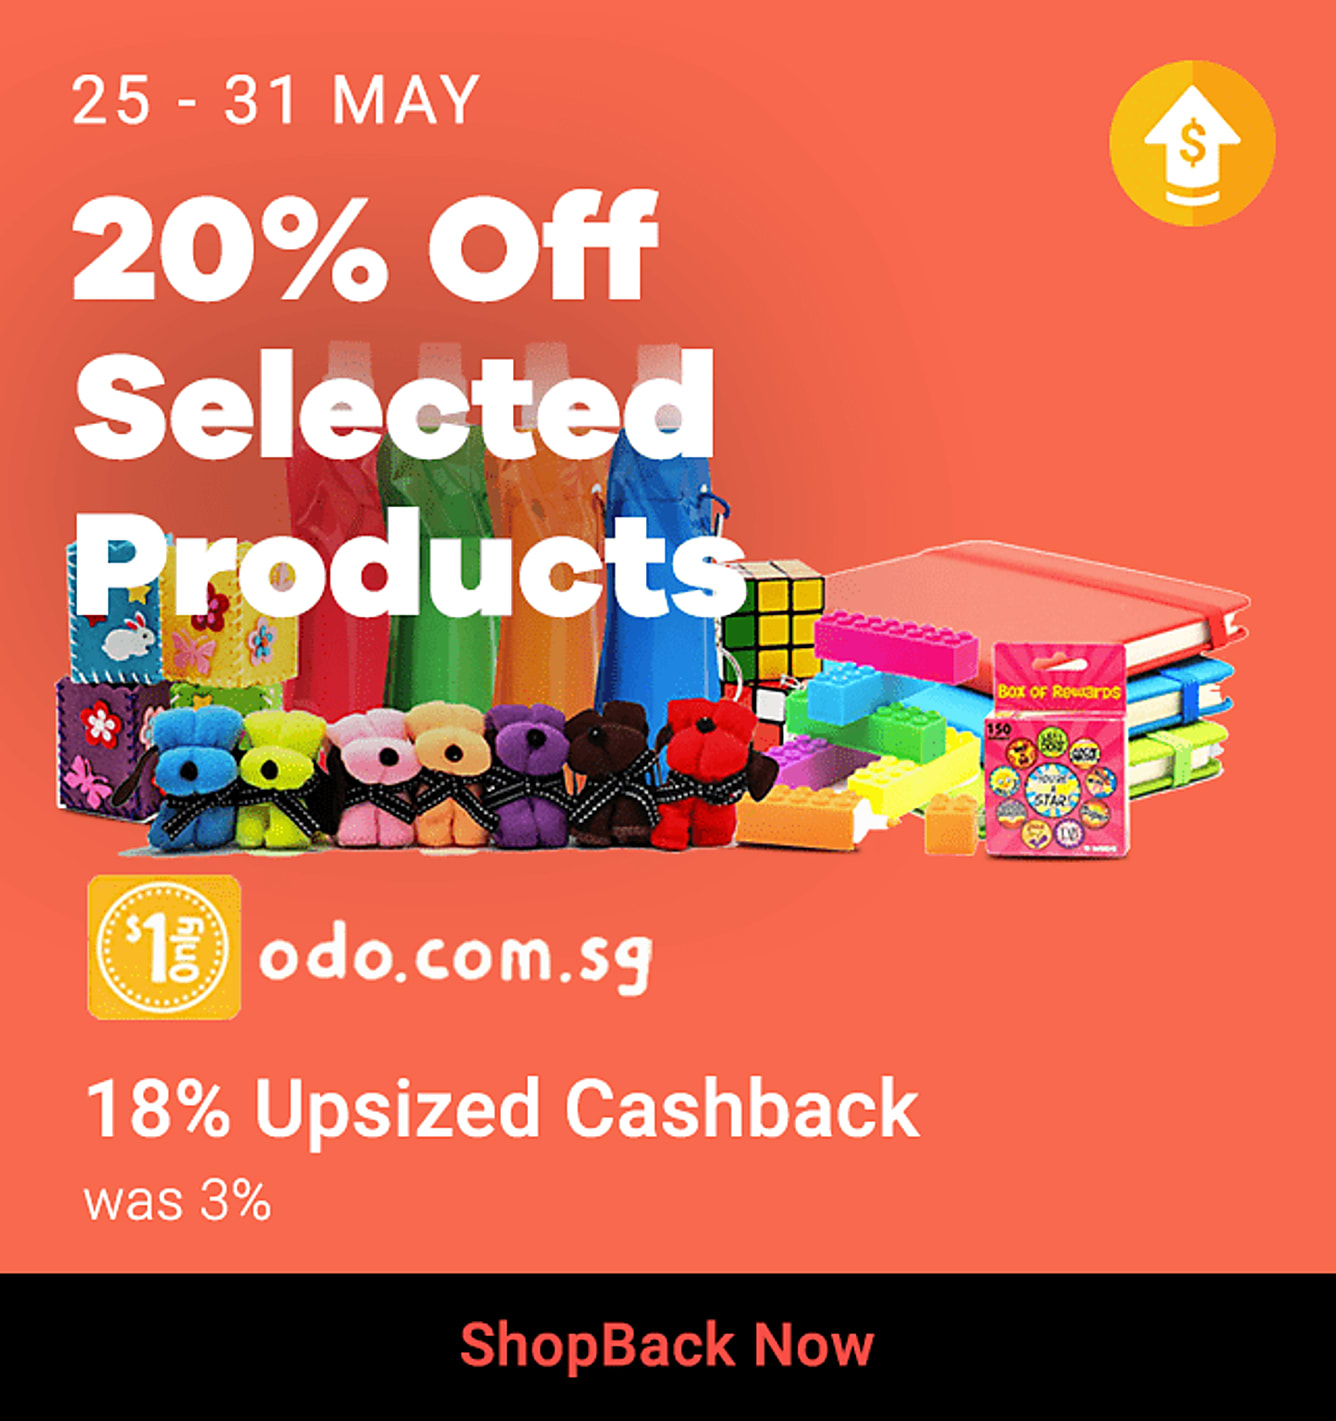 One Dollar Only_Upsize_25 May-31 May 2020